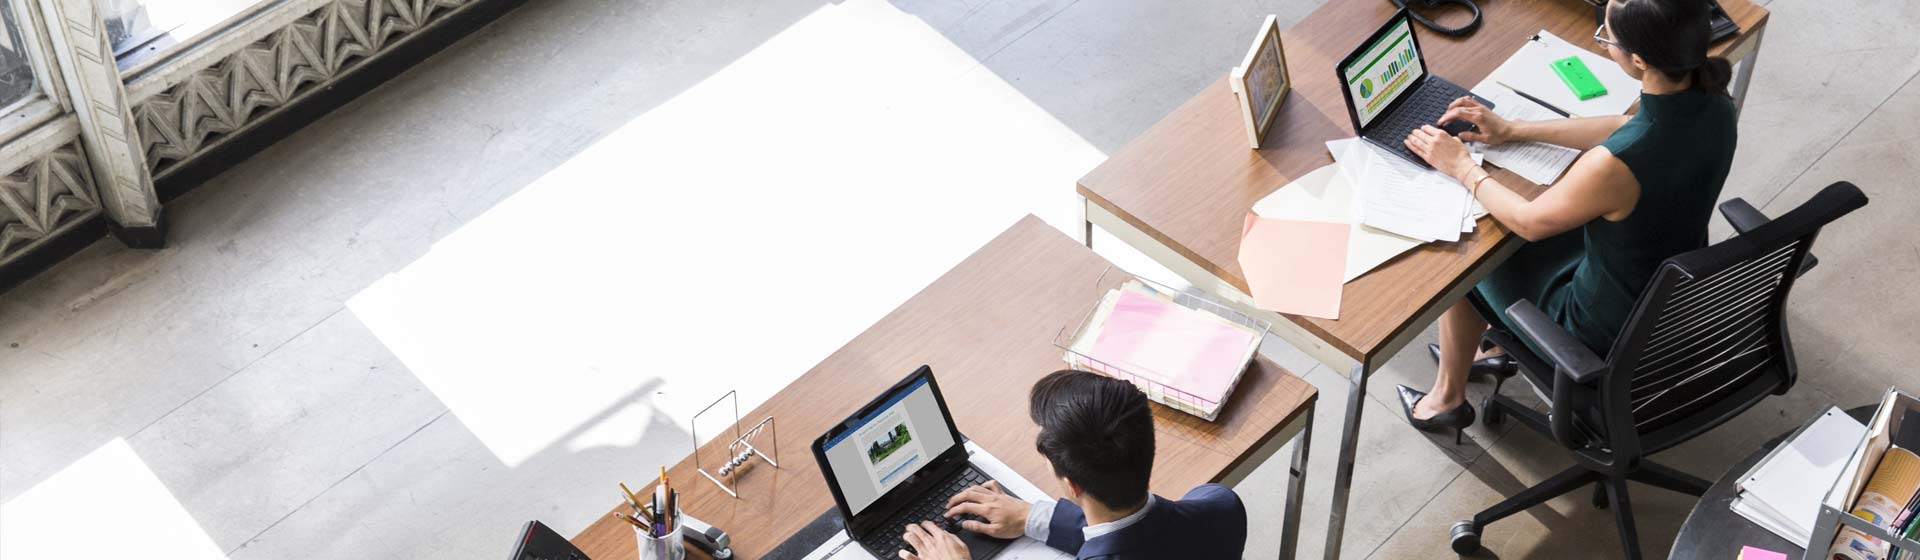 Get more value—upgrade from Office 2013 to Office 365 today